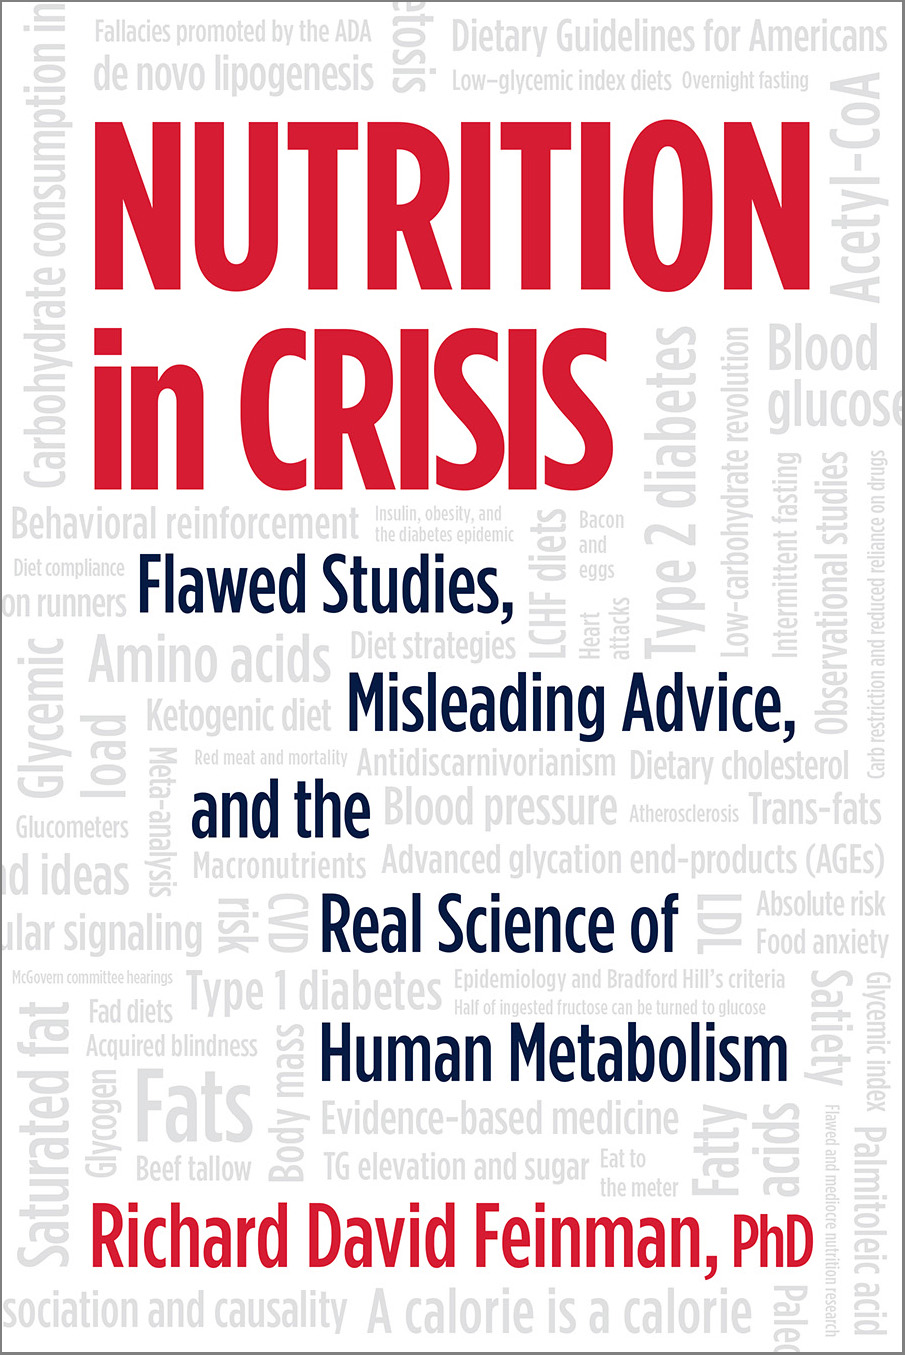 The Nutrition in Crisis cover